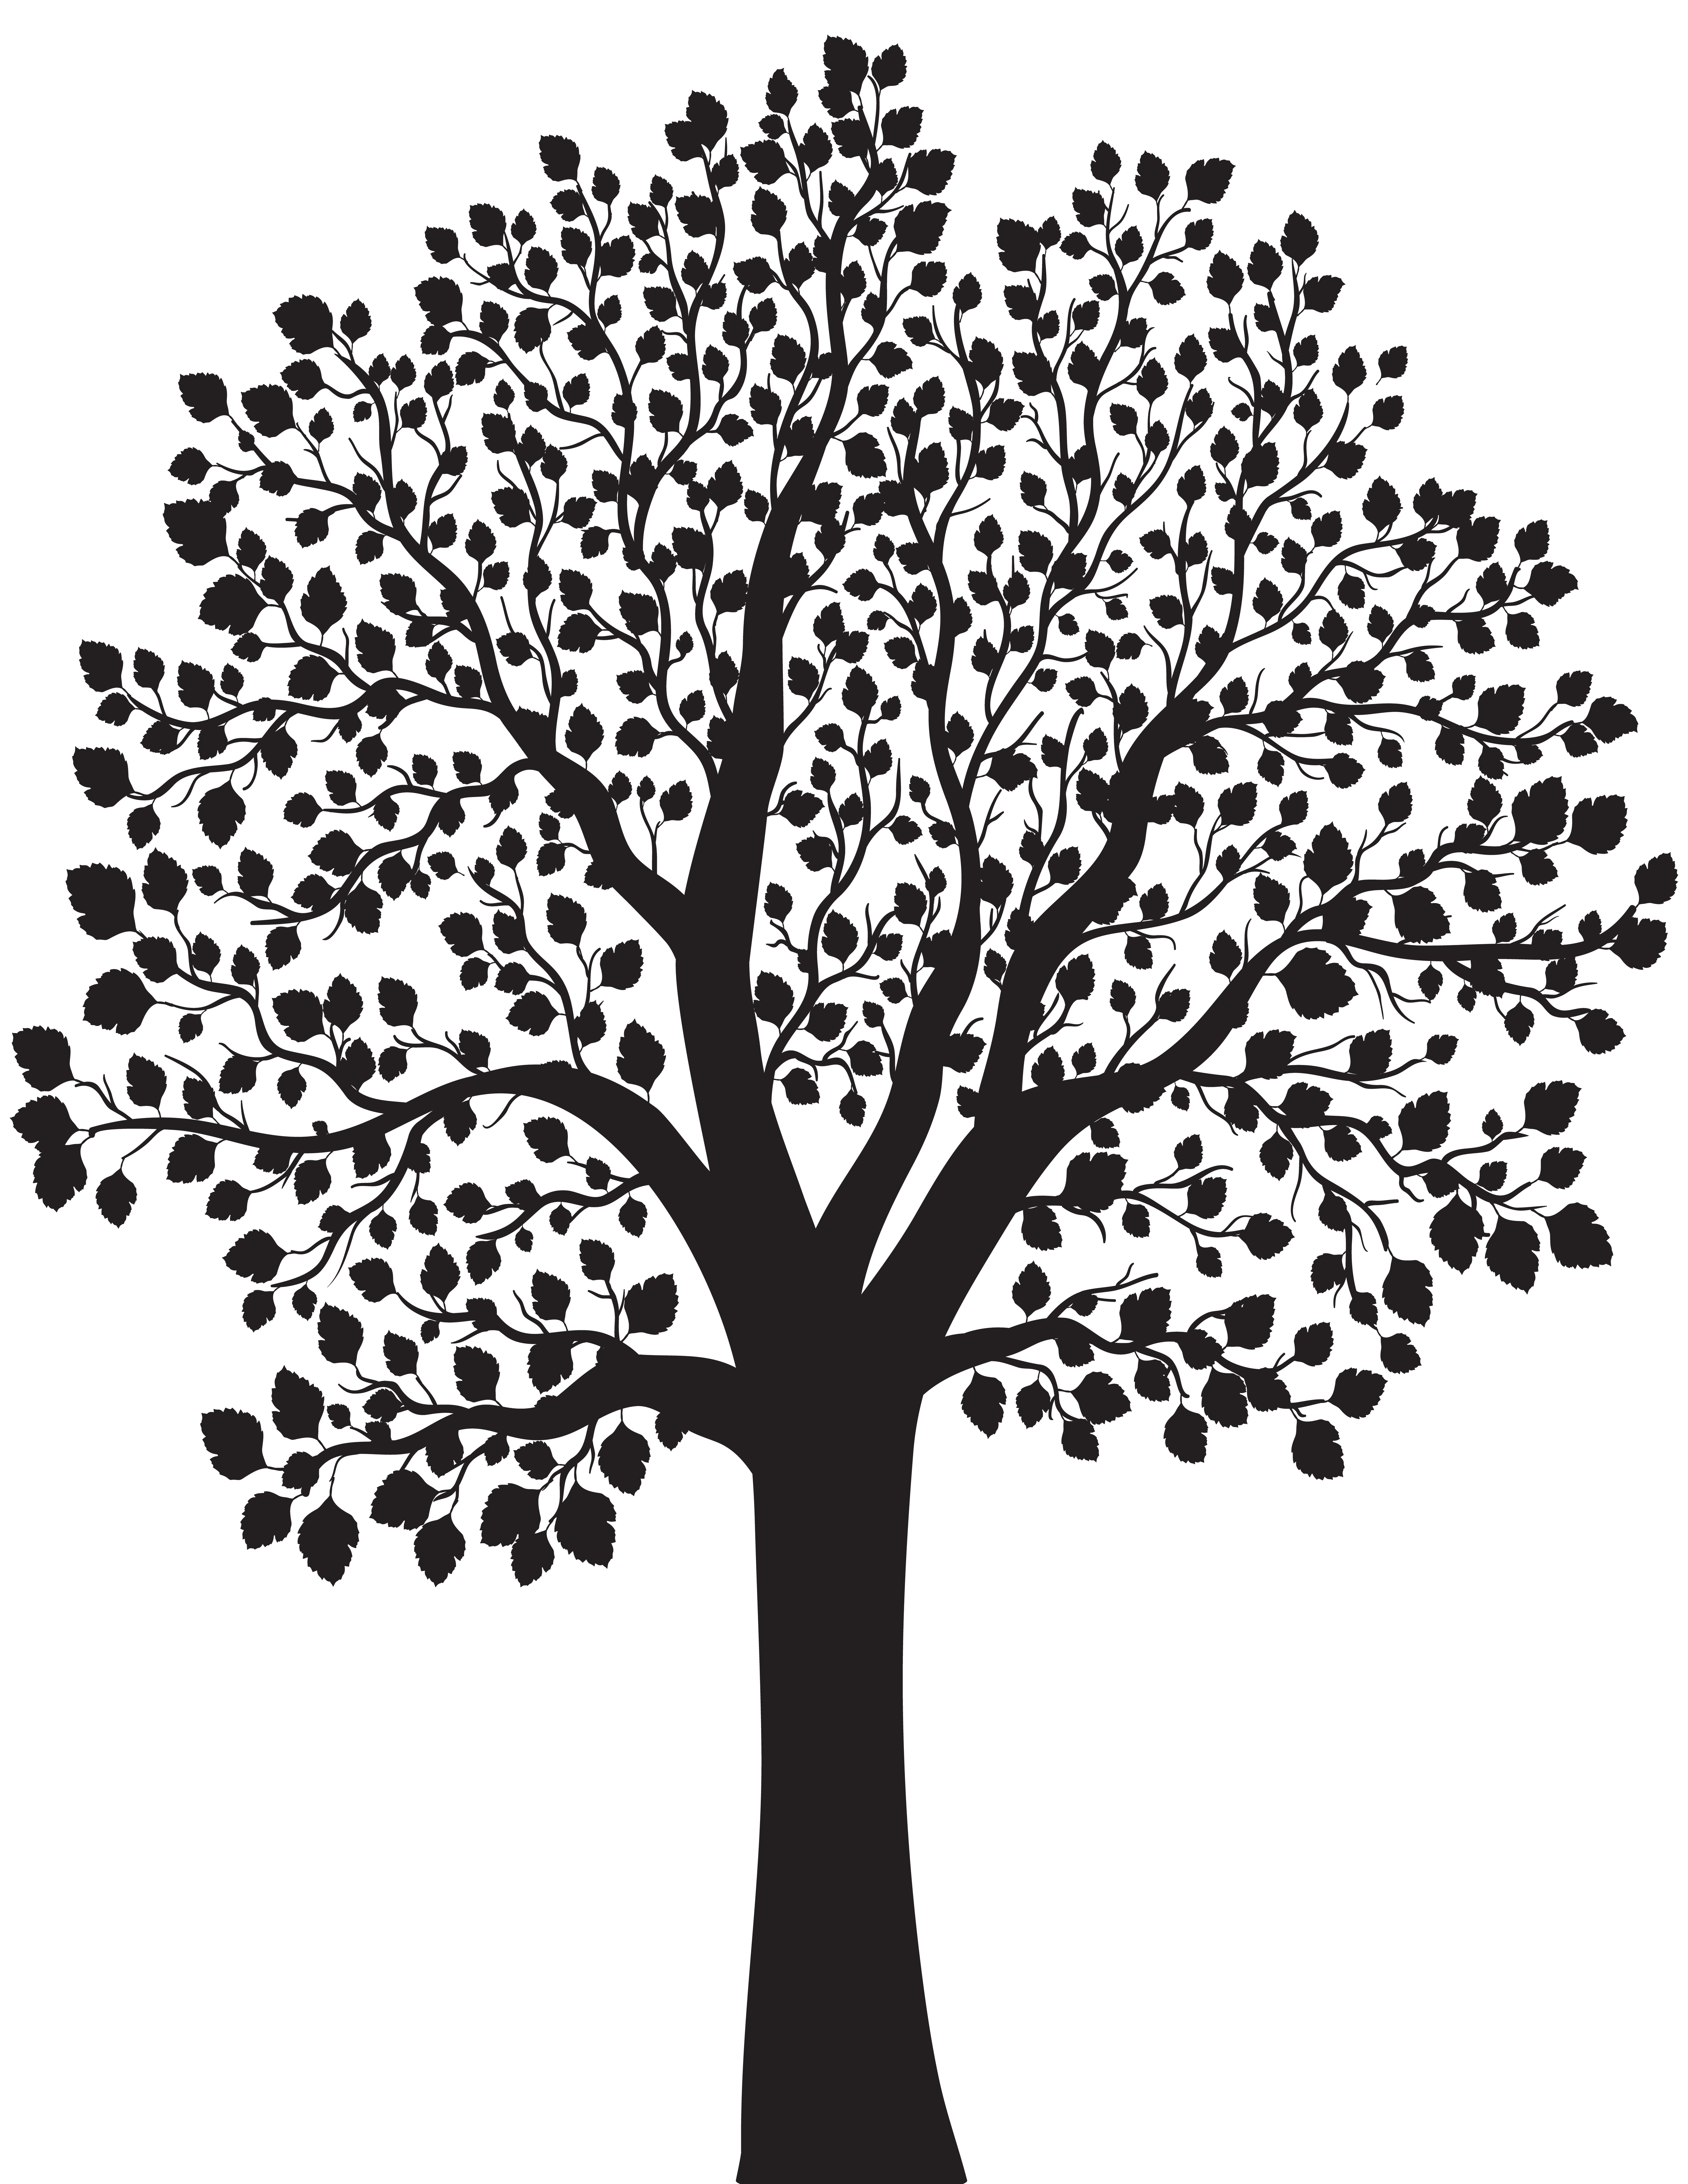 Silhouette tree clipart picture freeuse download Tree Silhouette PNG Clip Art Image | Gallery Yopriceville - High ... picture freeuse download